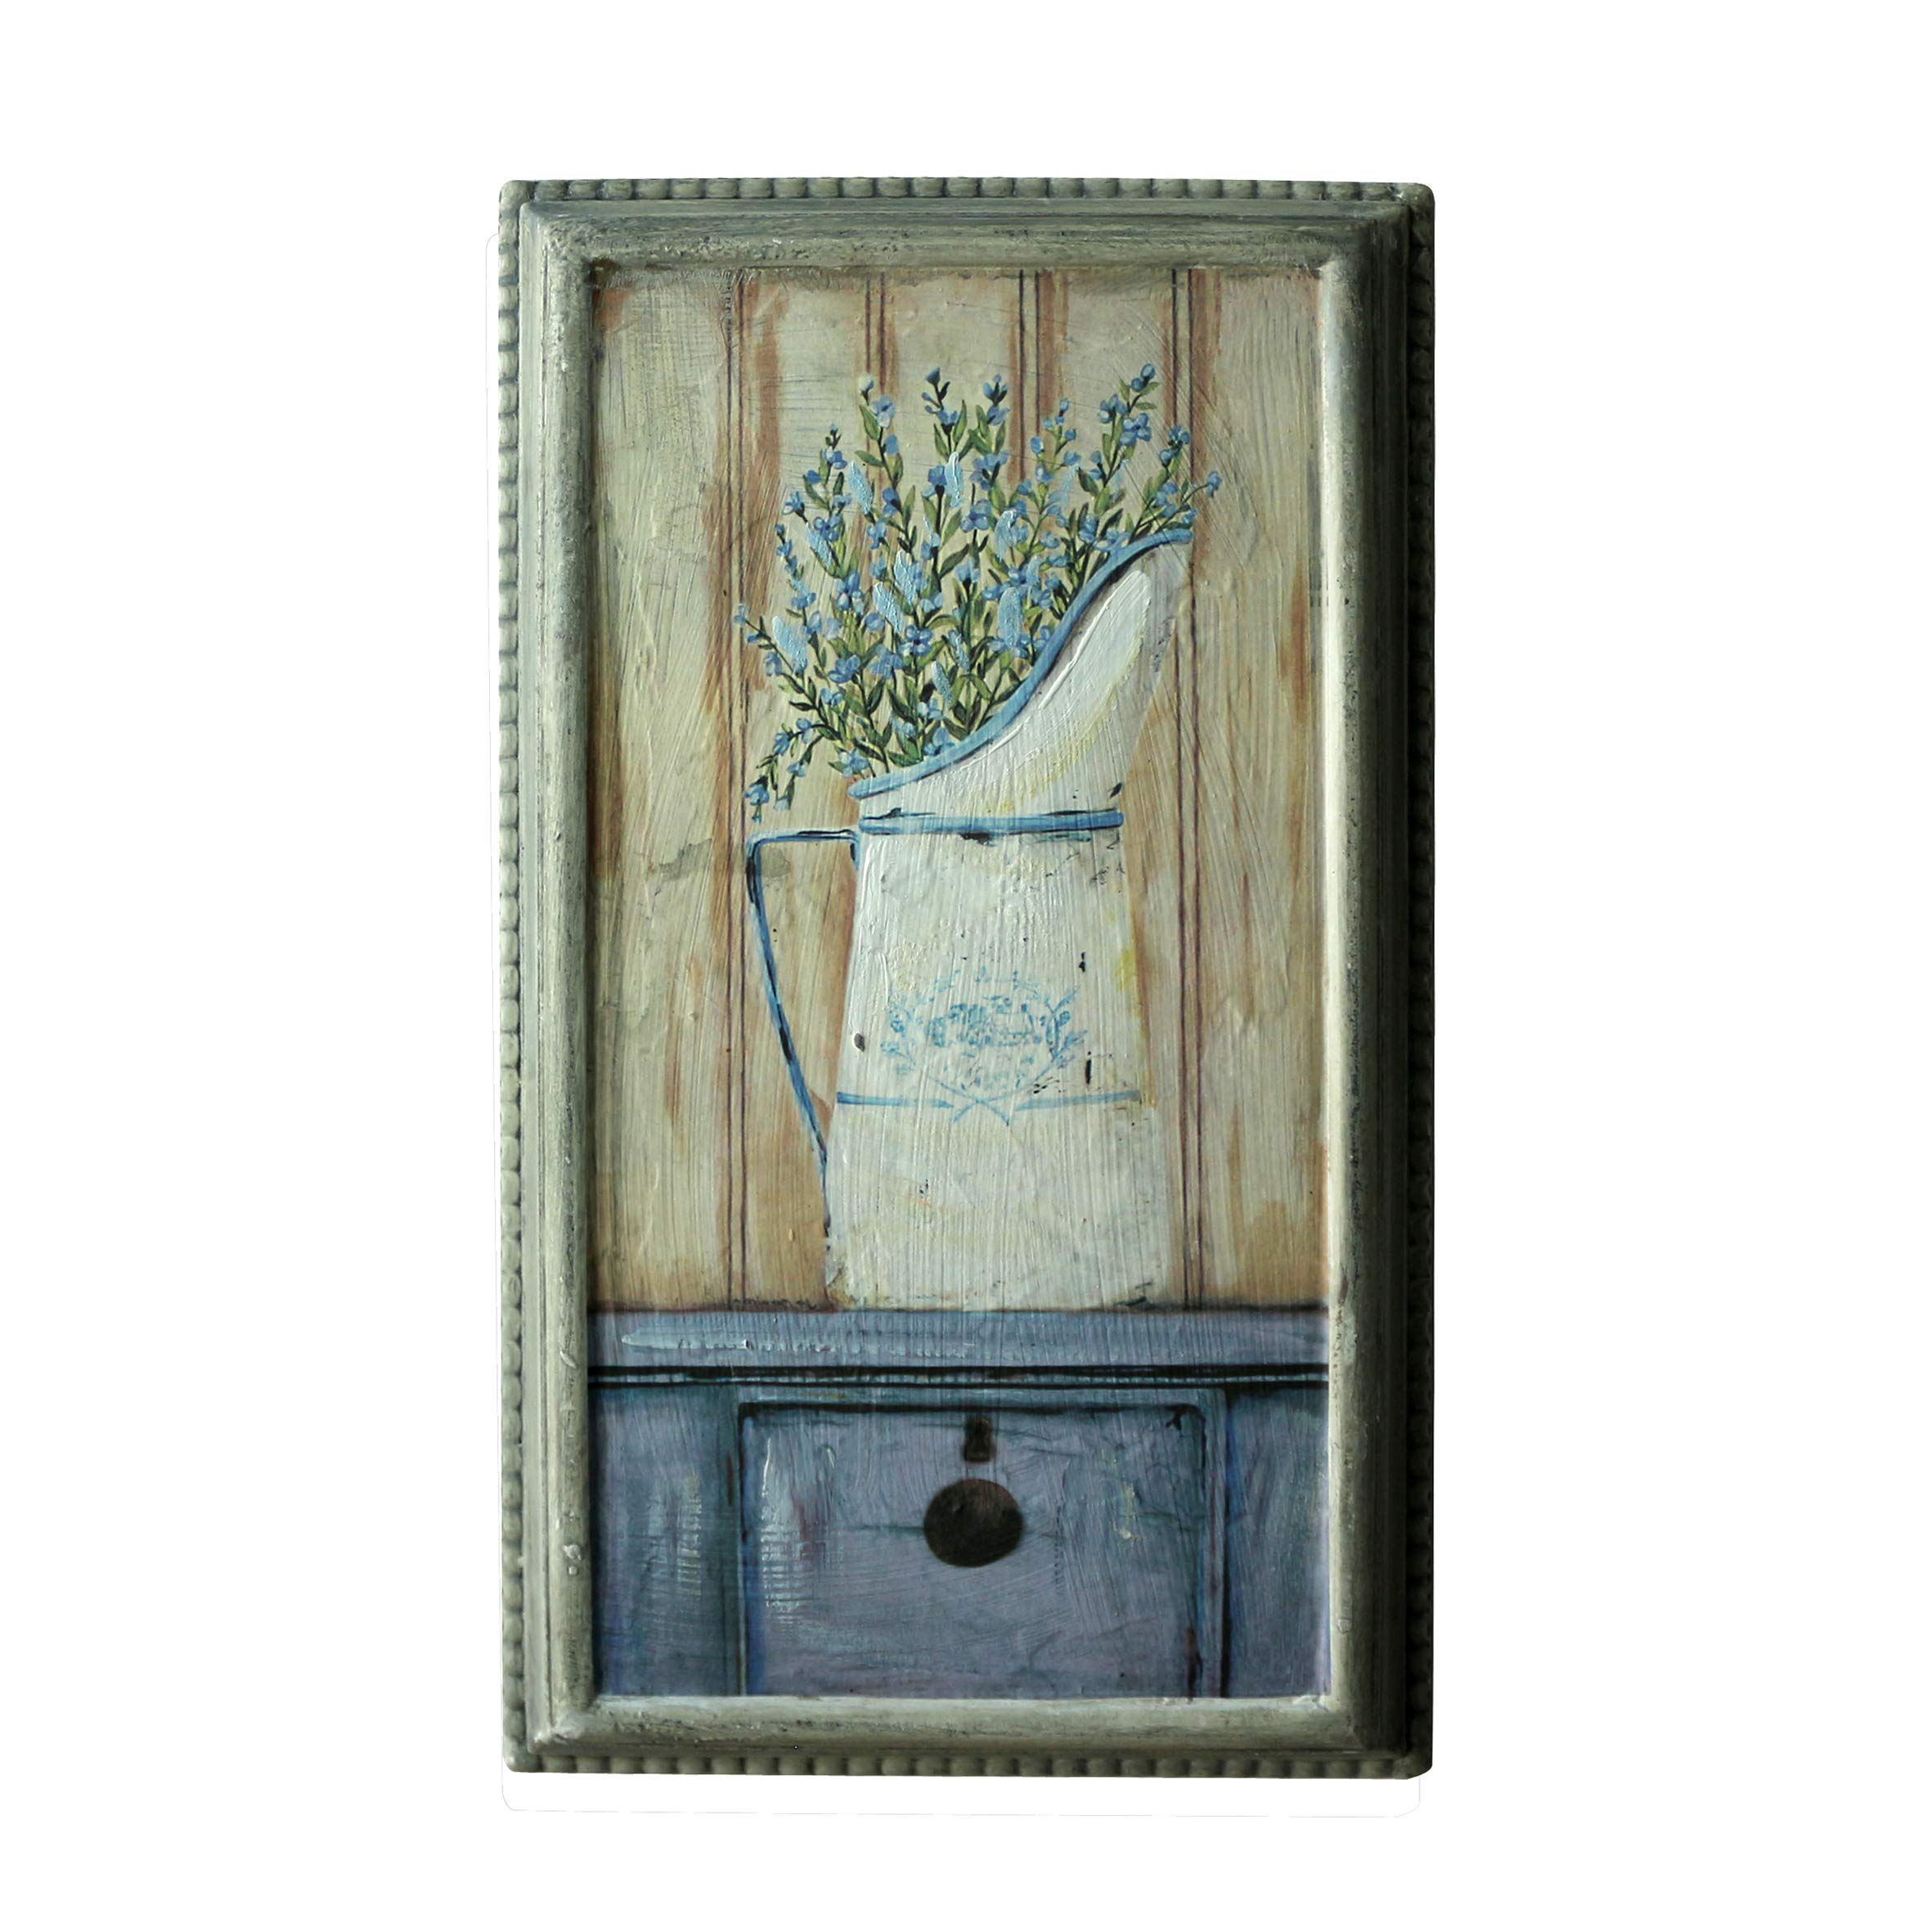 CVHOMEDECO. Rustic Primitive Hand Painted Wooden Frame Wall Hanging 3D Painting Decoration Art, Lavender in Milk Jar Design, 8-1/2'' x 14-3/4''